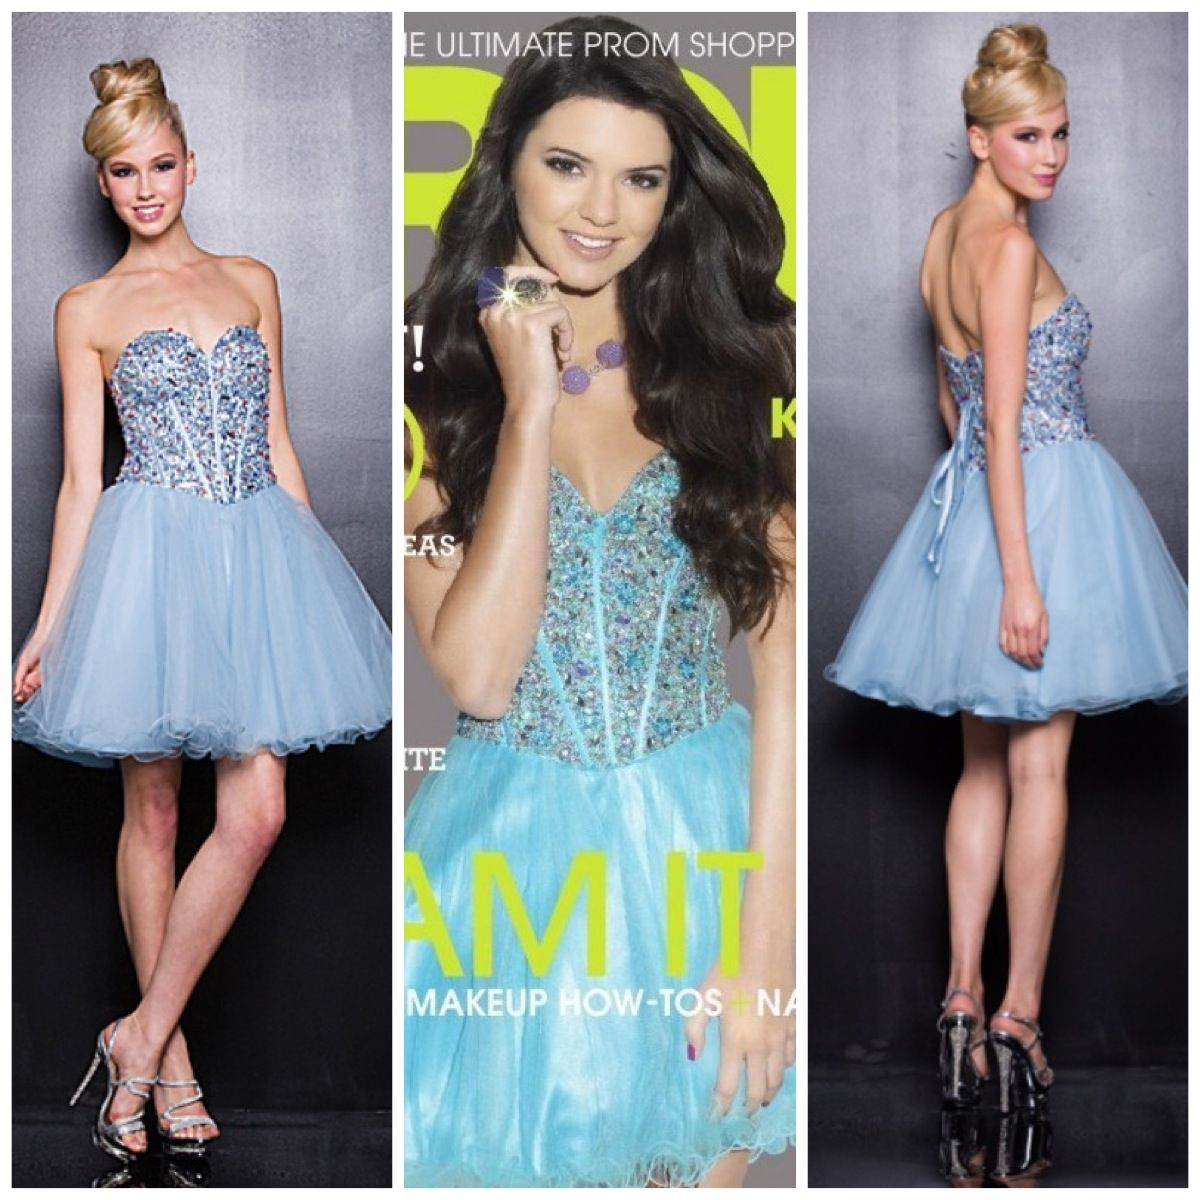 Hey Kendall Jenner, we love your dress!! Get it with us at La Reign ...